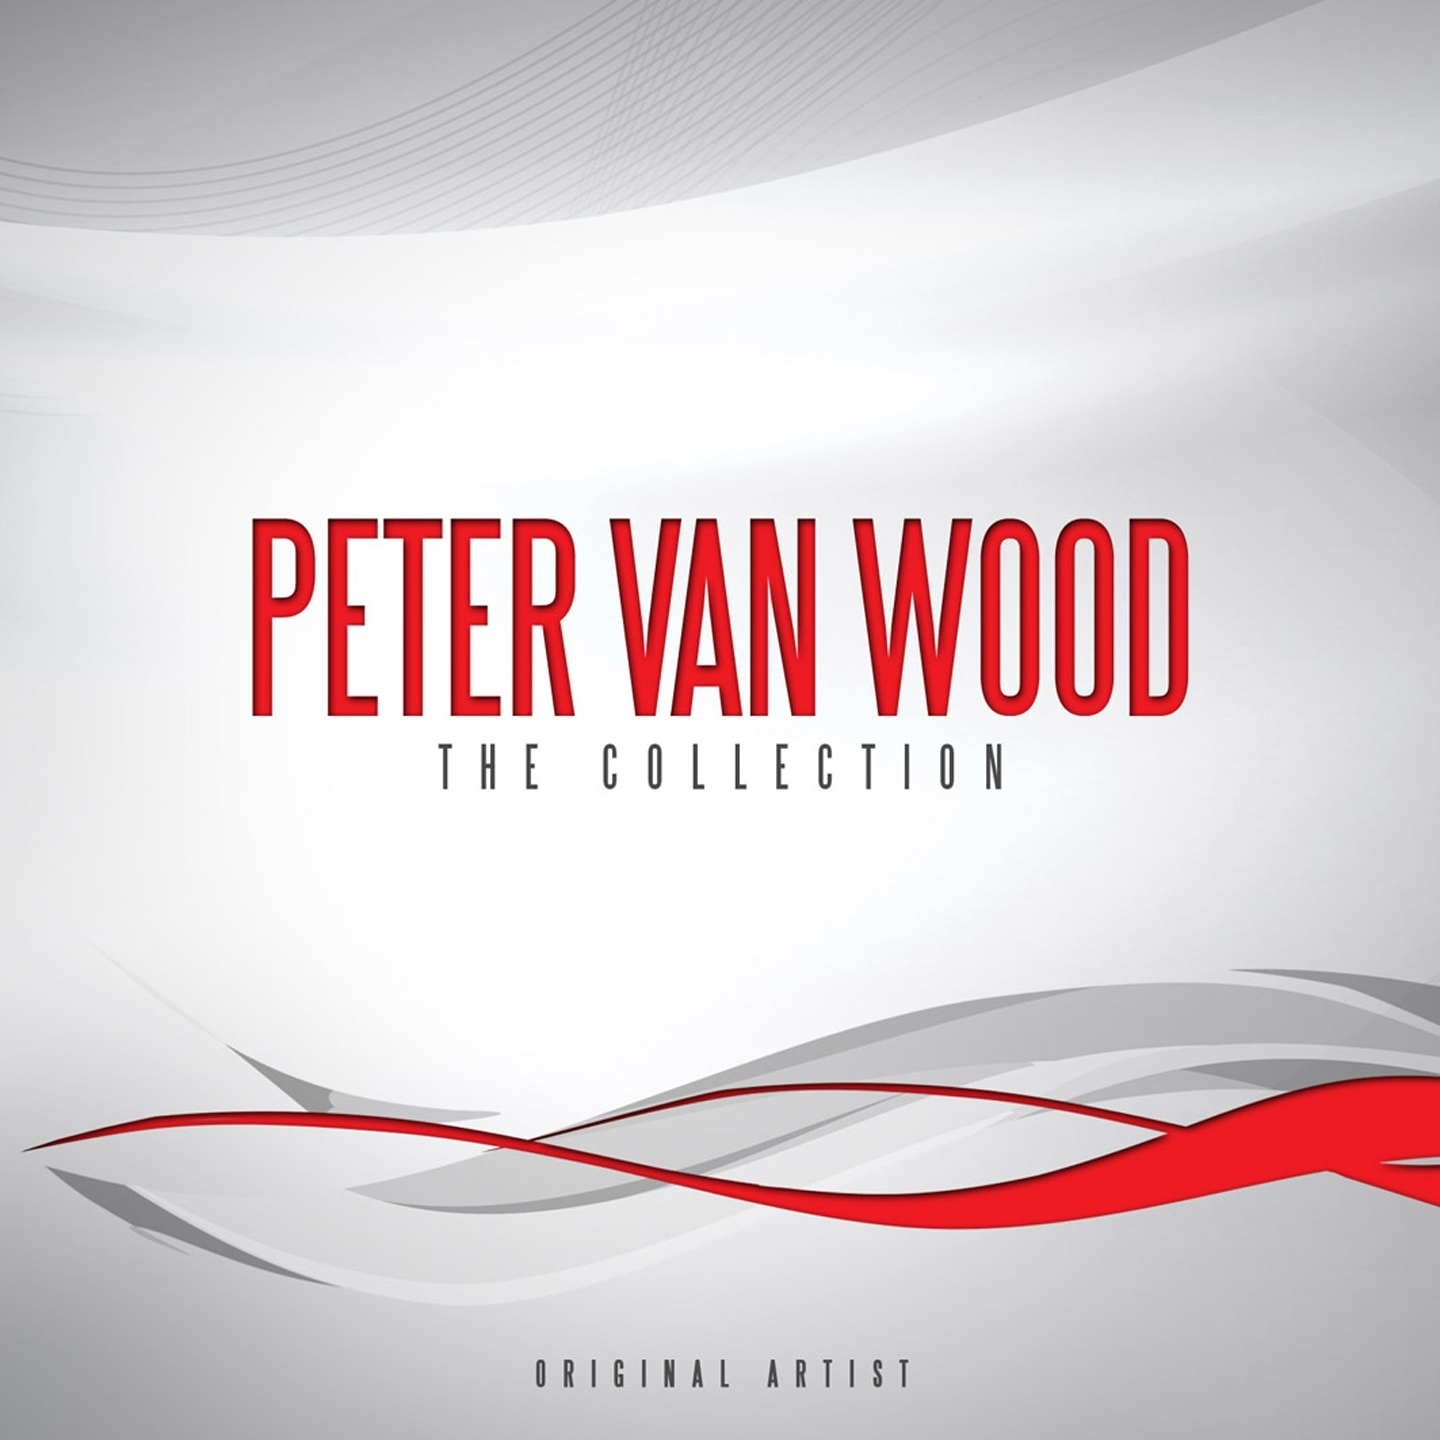 Peter Van Wood: Le origini